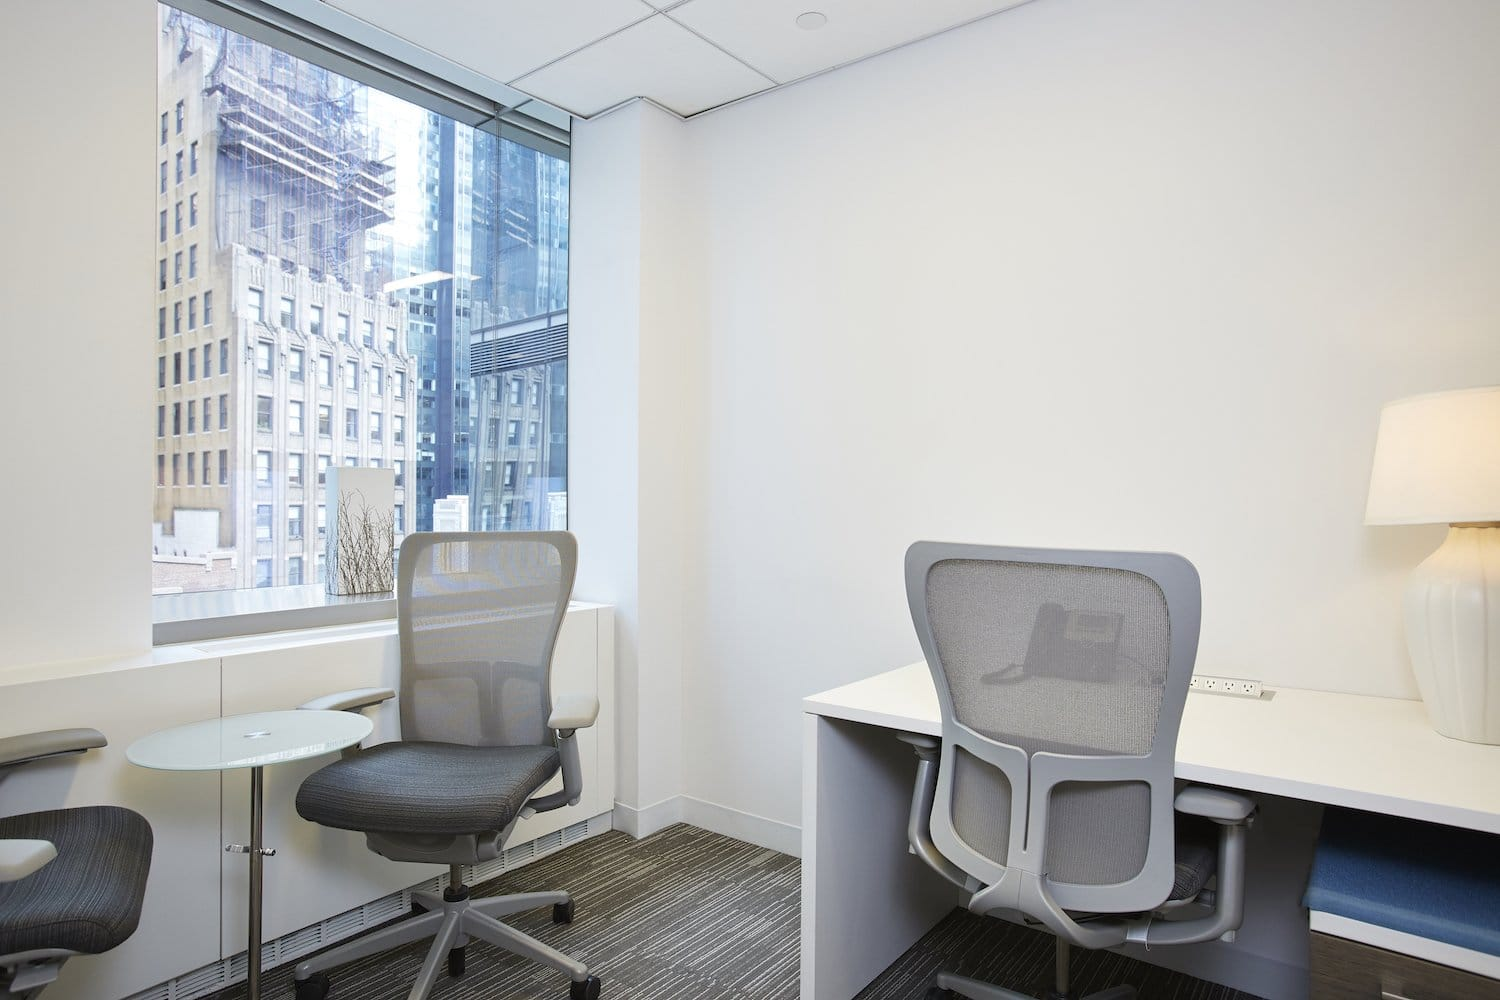 Shared office space with a window